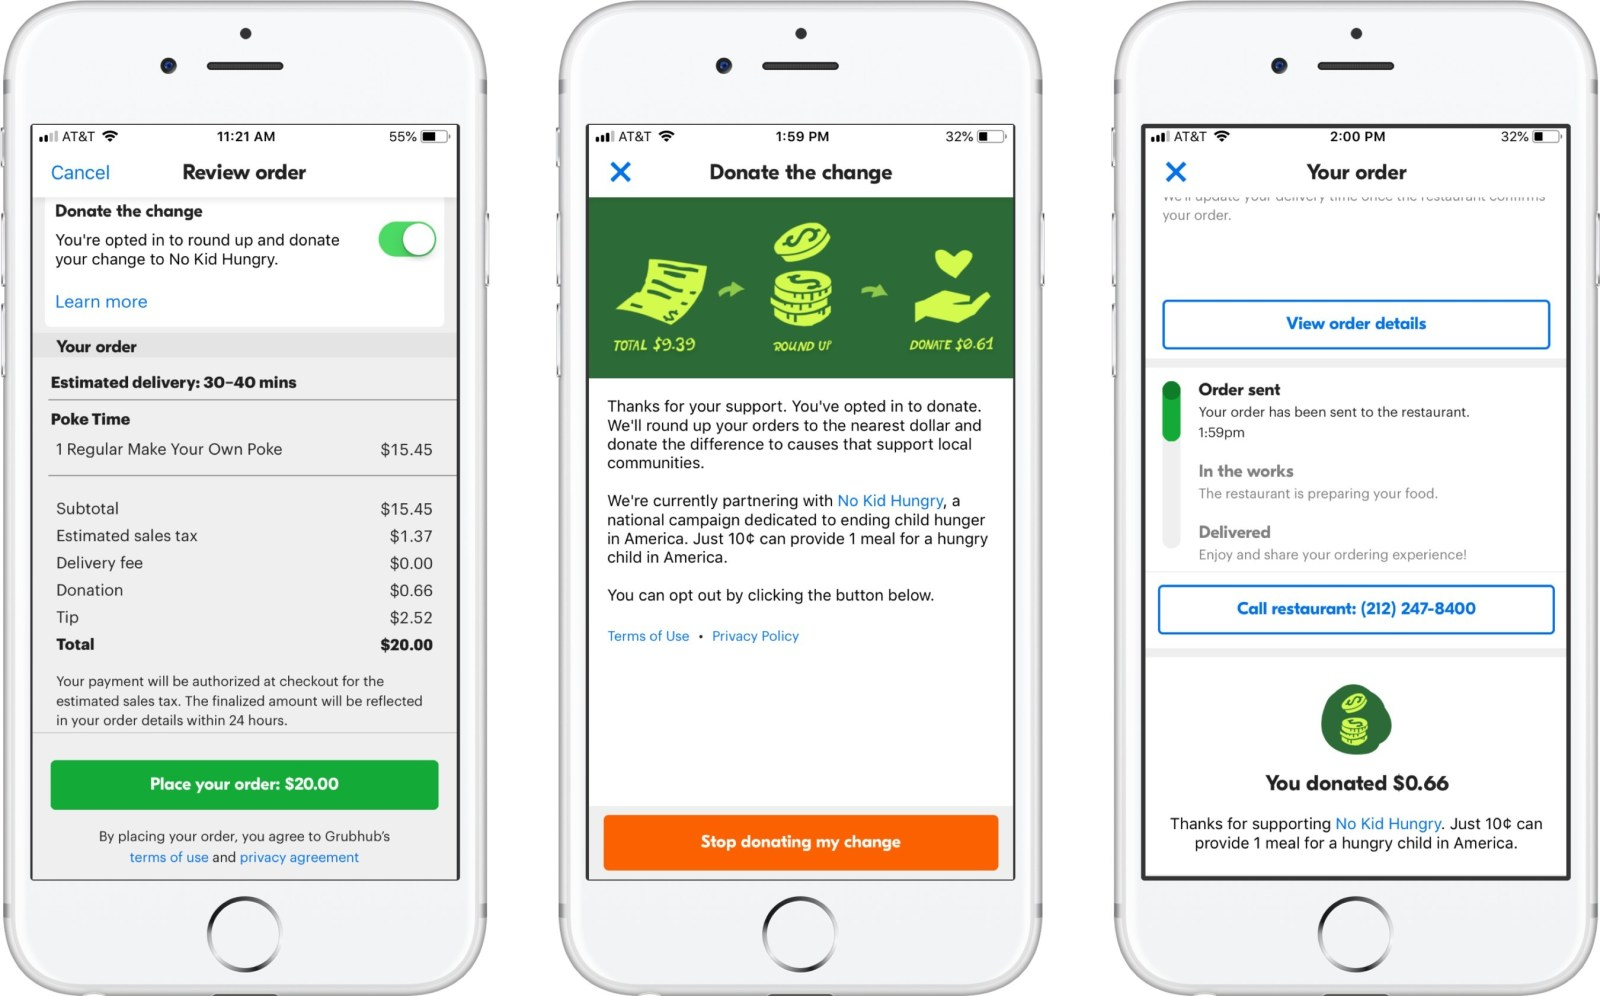 Grubhub wants you to donate the change to No Kid Hungry